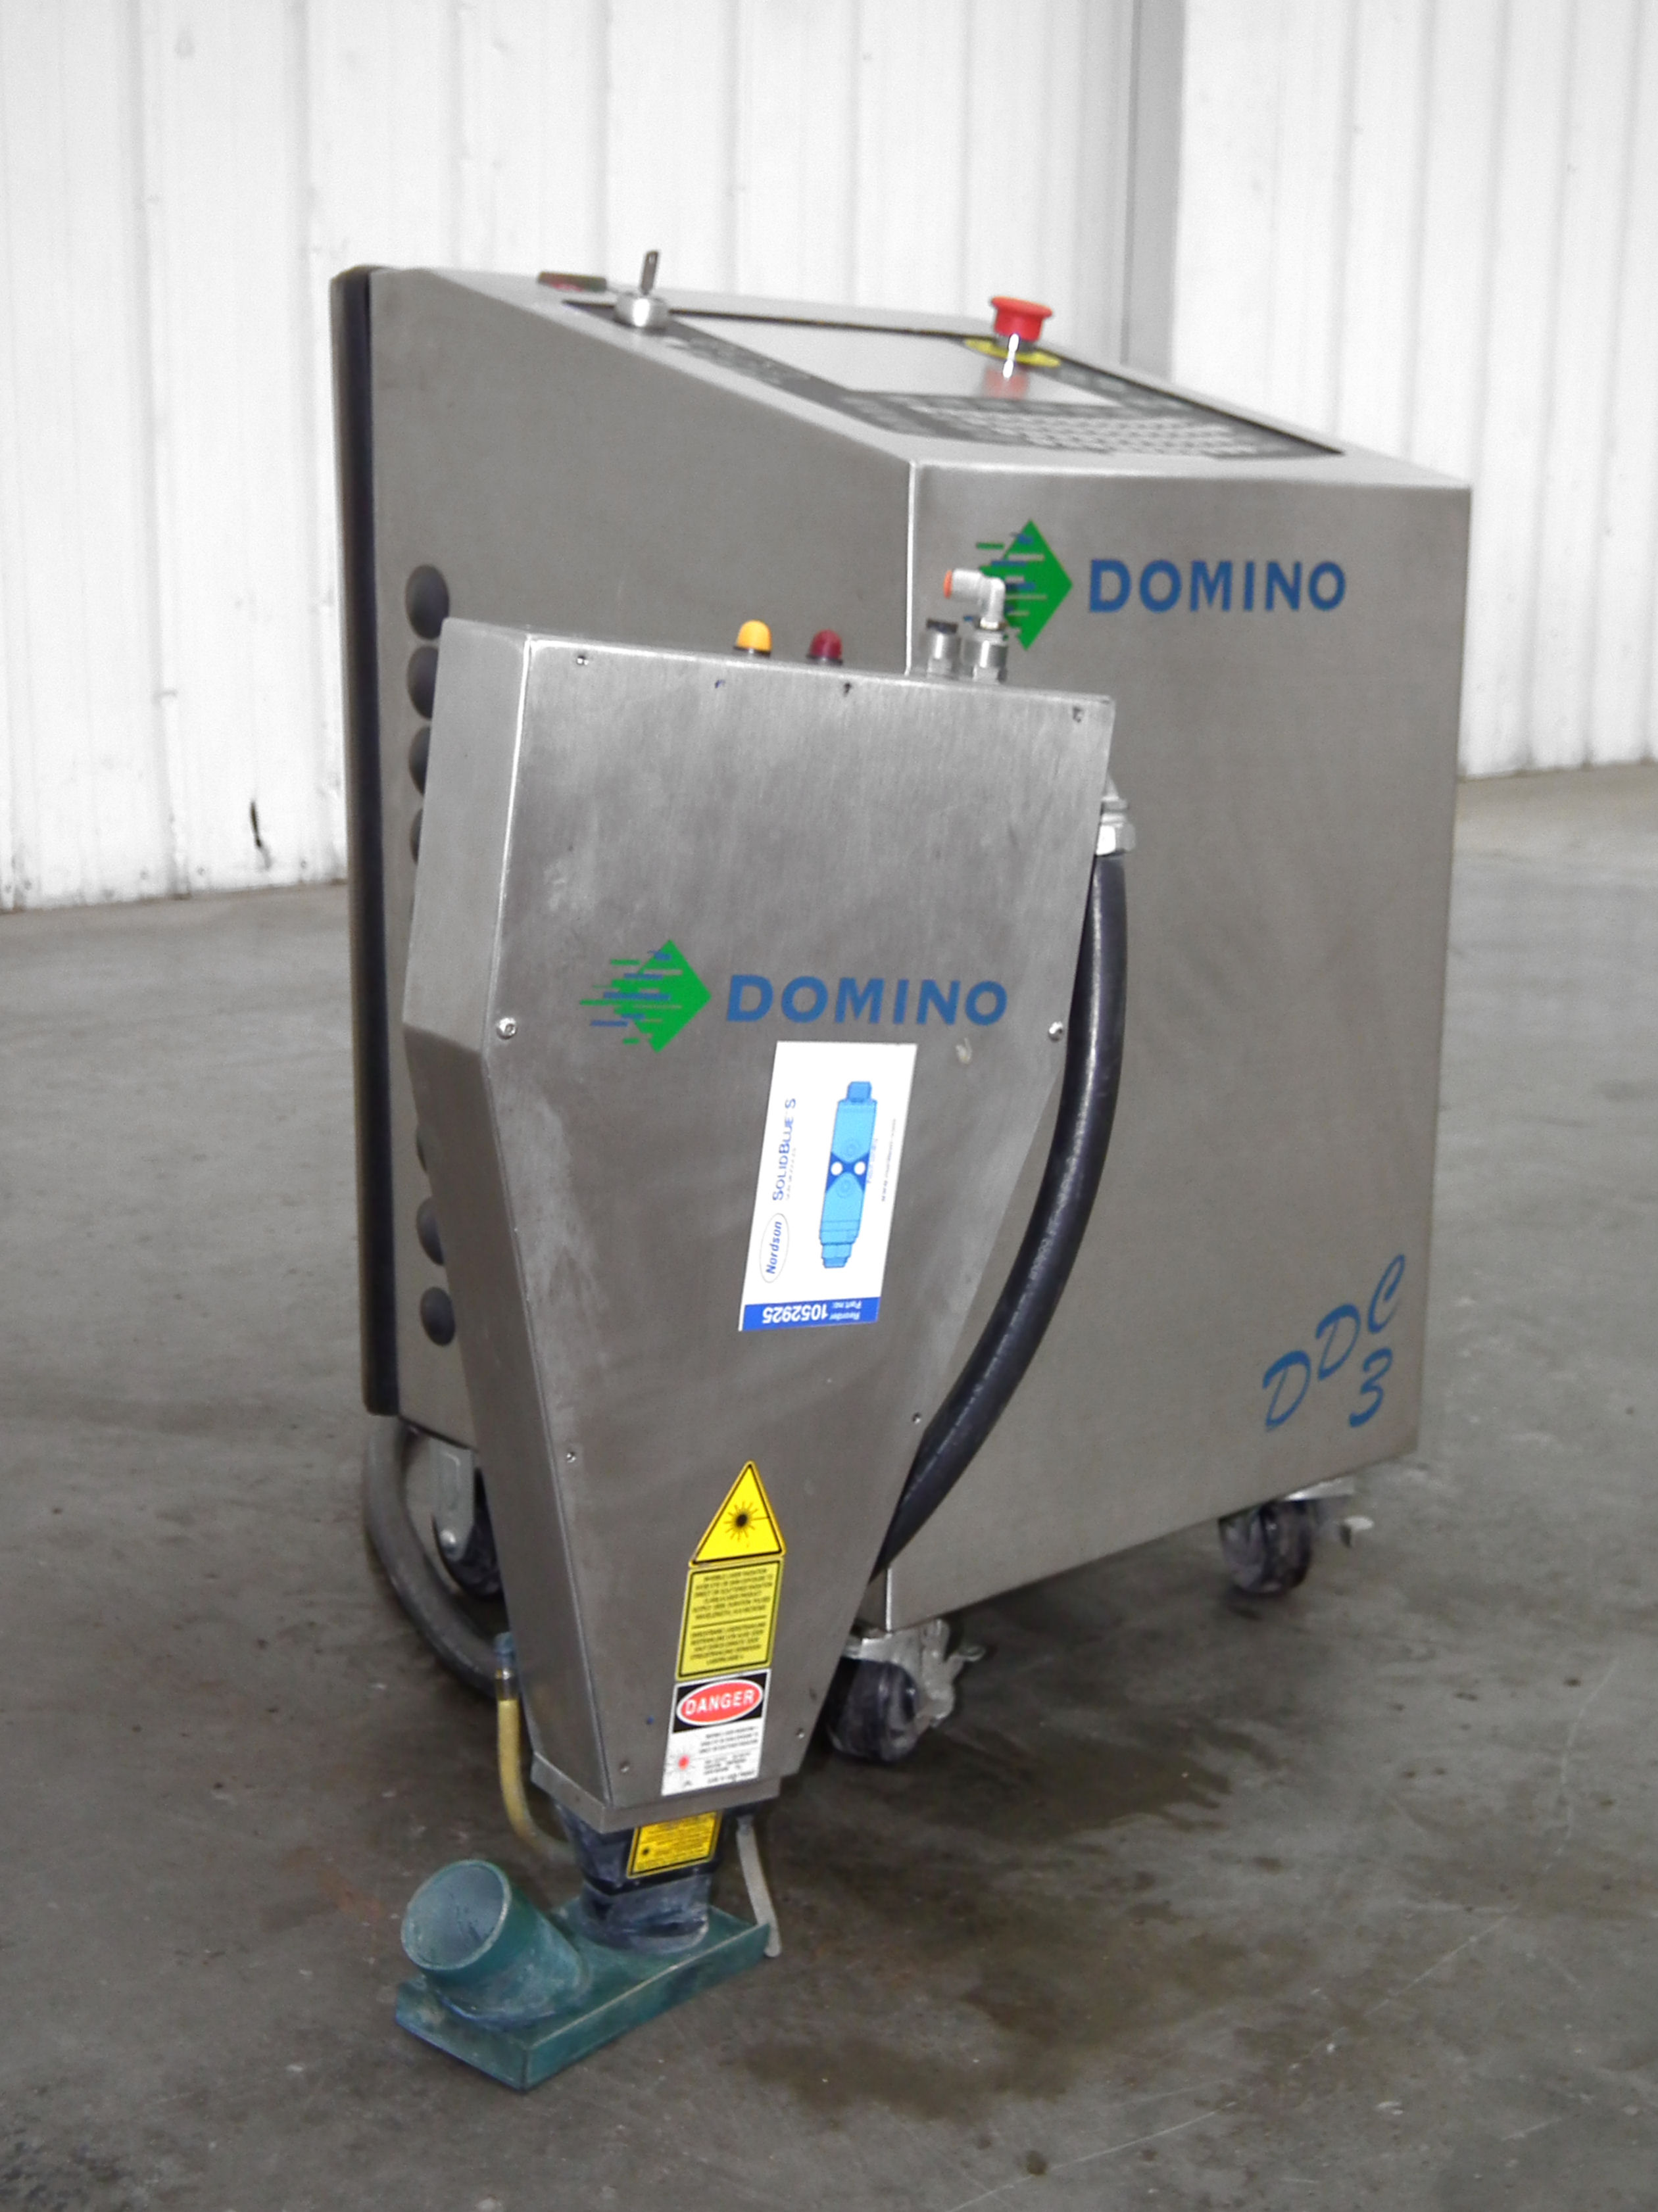 Domino DDC3 Laser Code Dater B4639 - Image 5 of 10